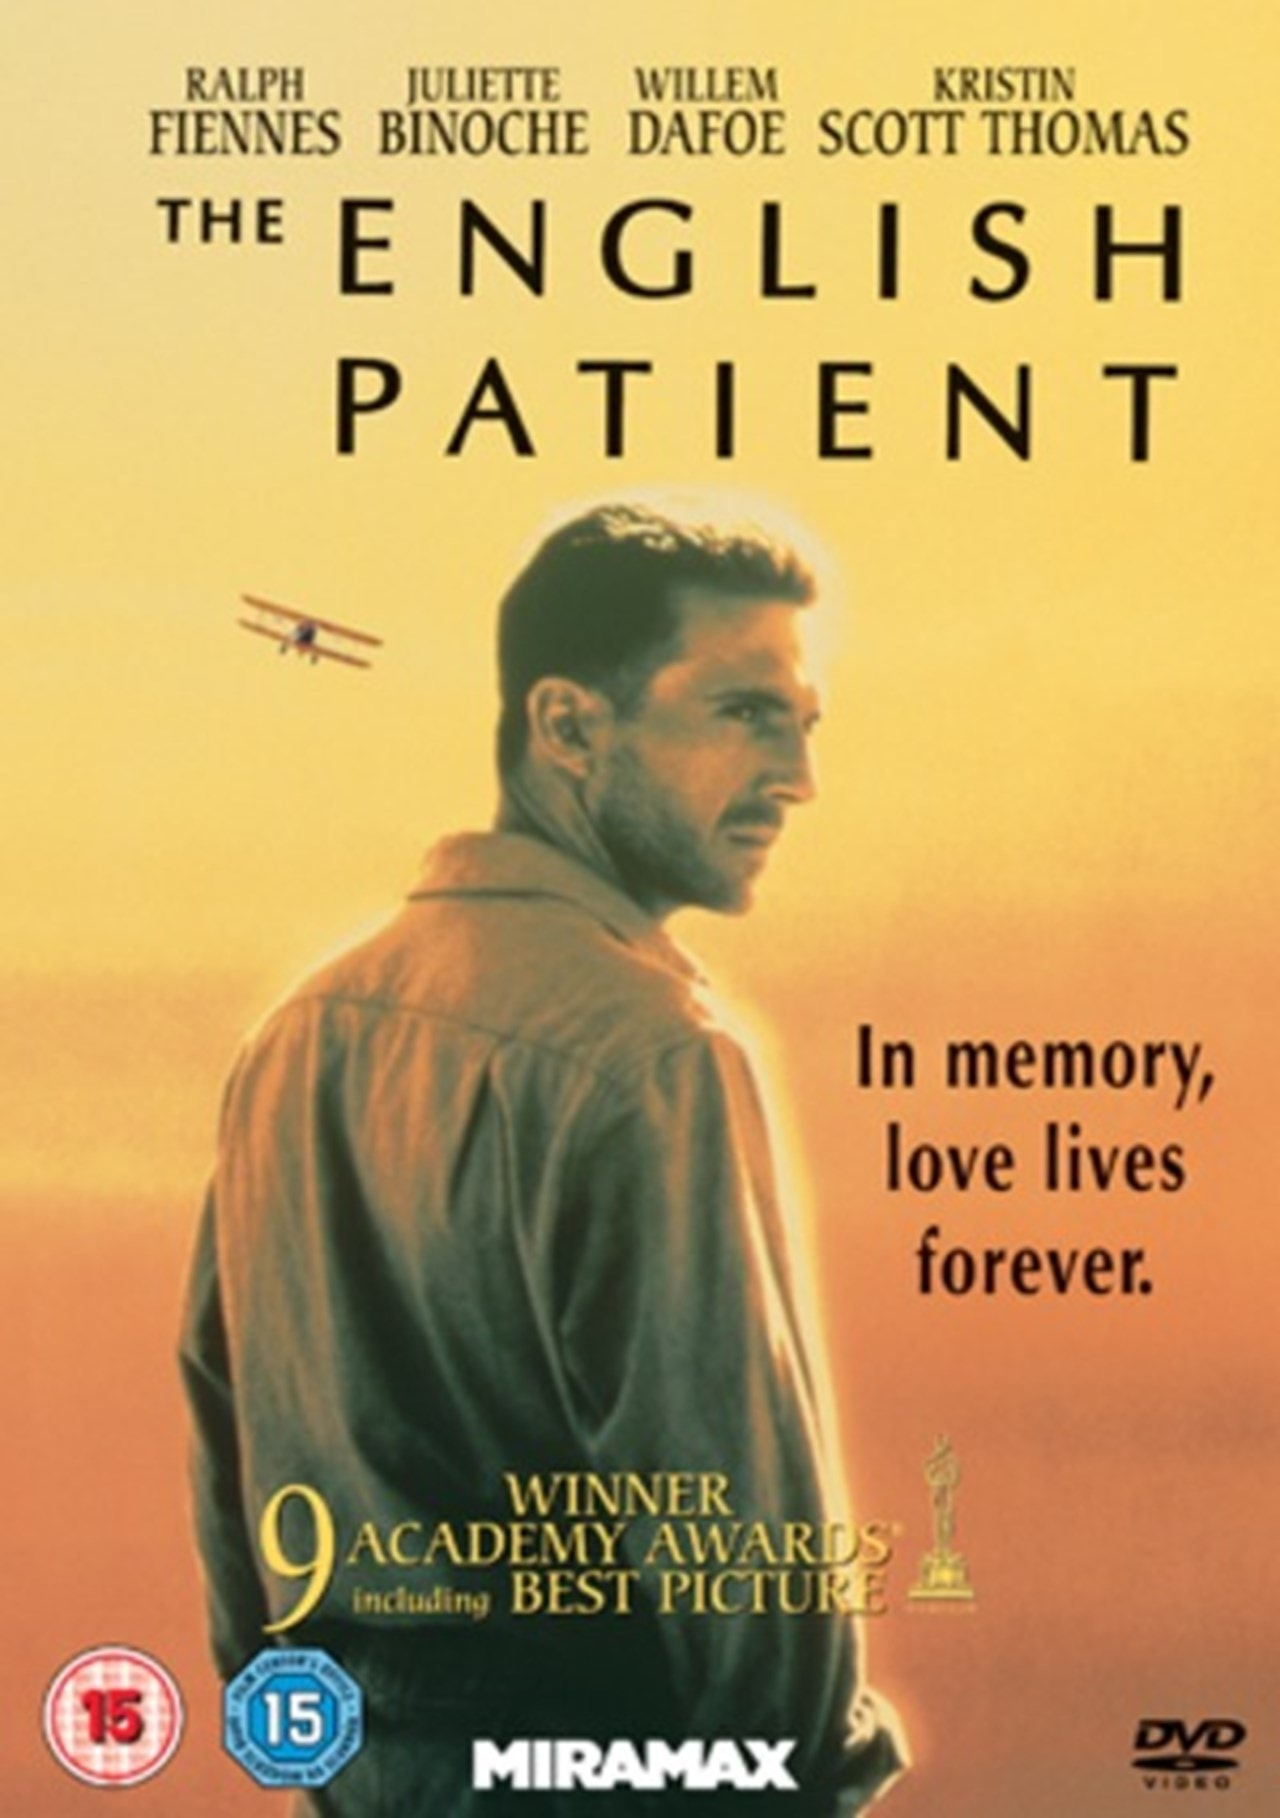 The English Patient - 1